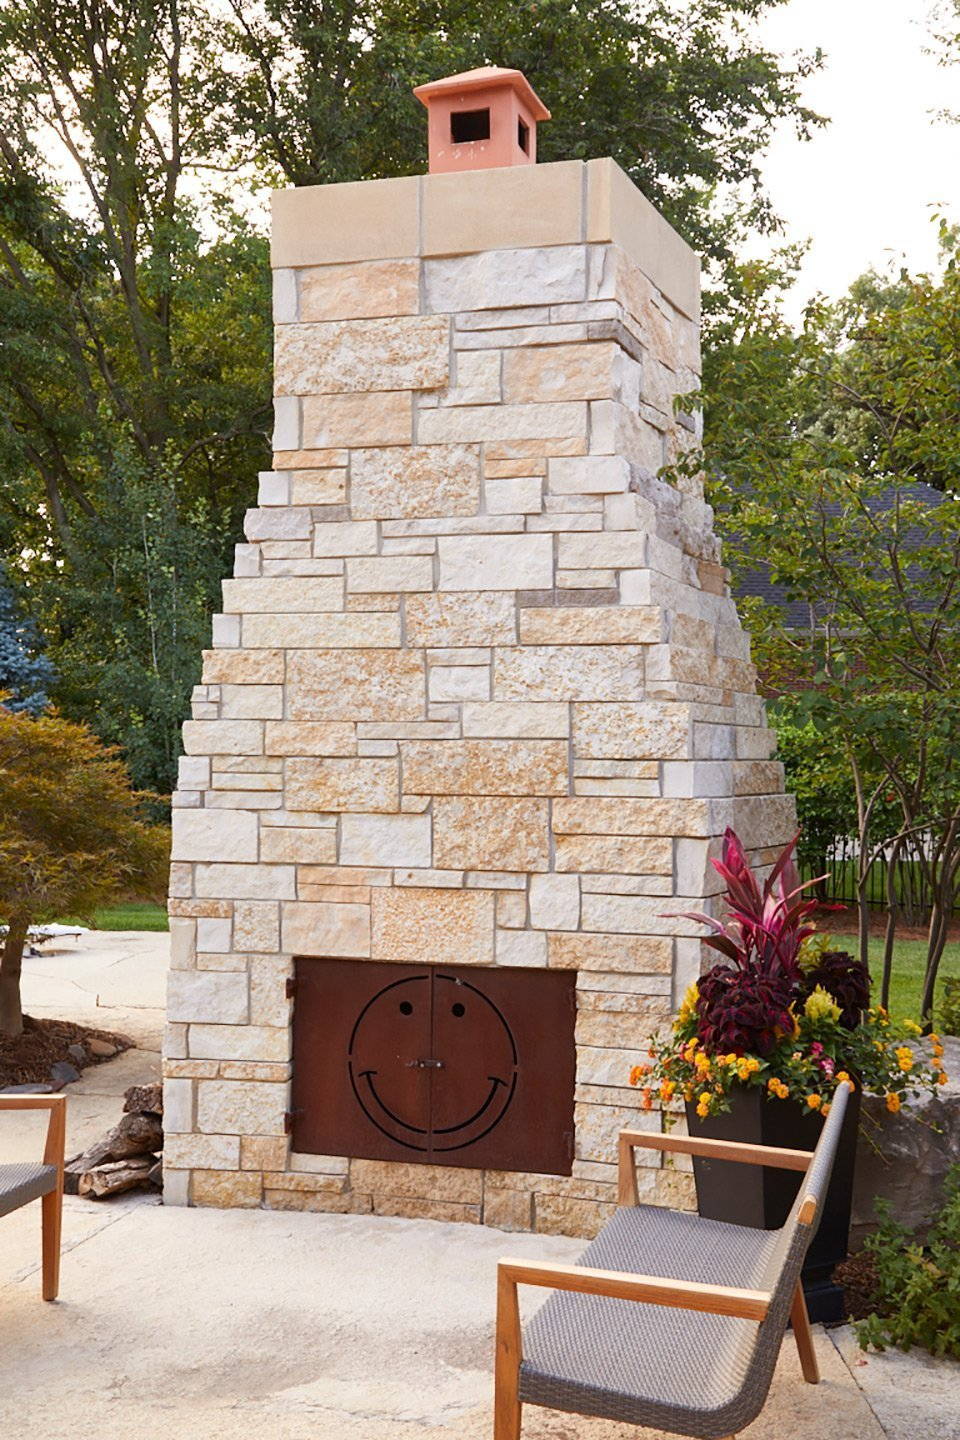 Ted-lare-stone-fire-place